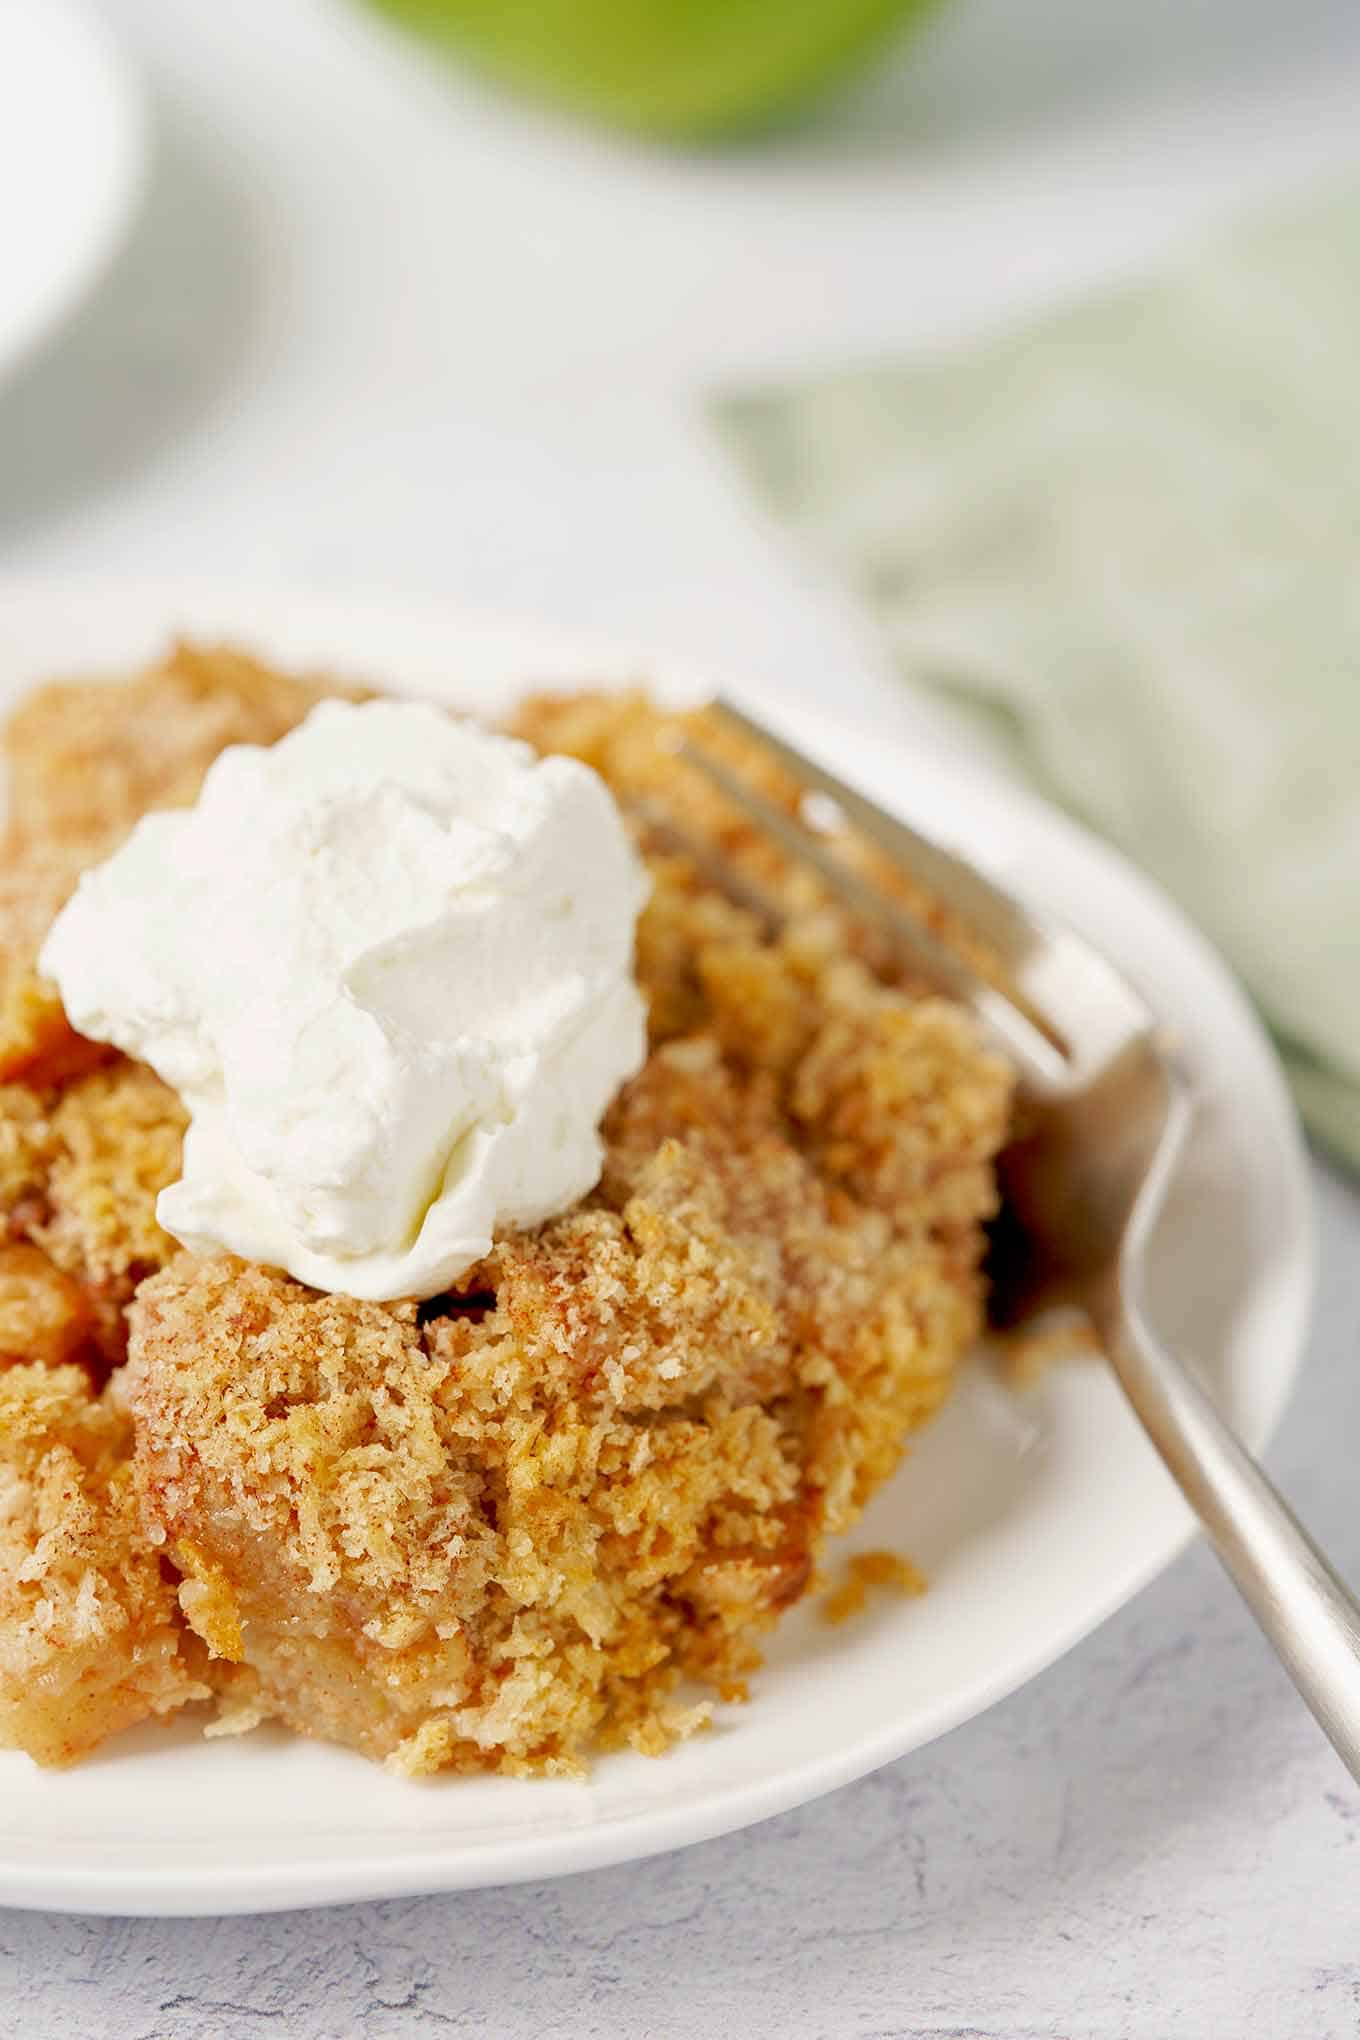 A serving of apple brown betty topped with whipped cream on a white plate.